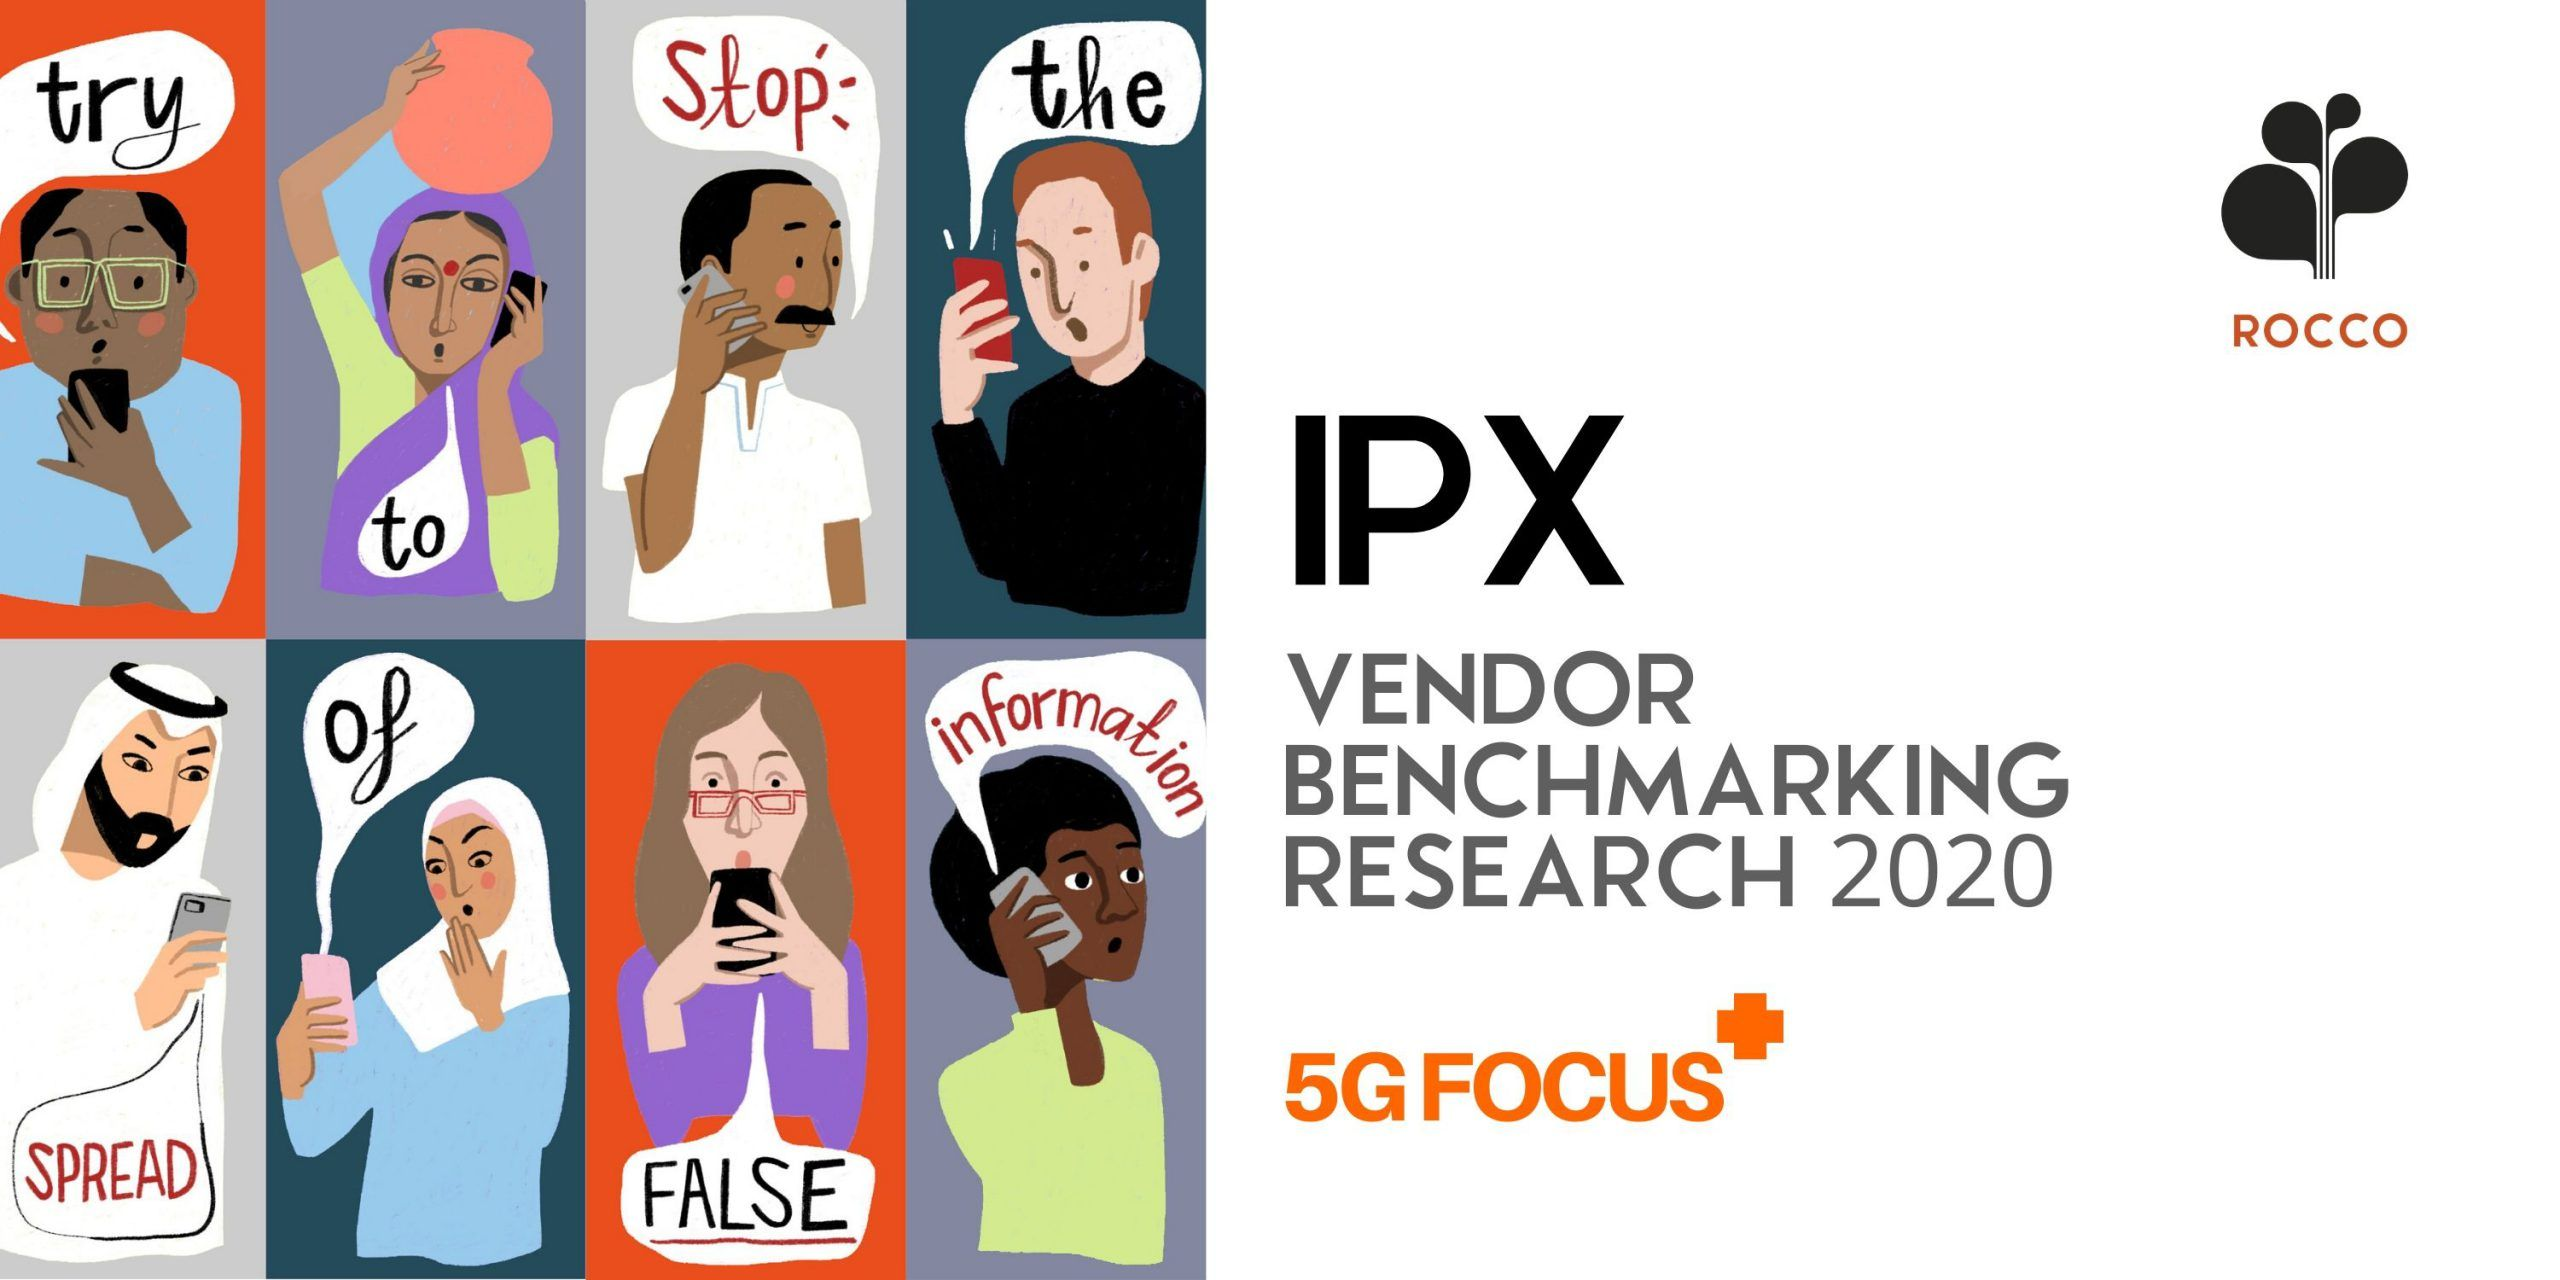 ROCCO RESEARCH: IPX NETWORKS VENDOR BENCHMARKING RESEARCH FOR 2020 BEGINS